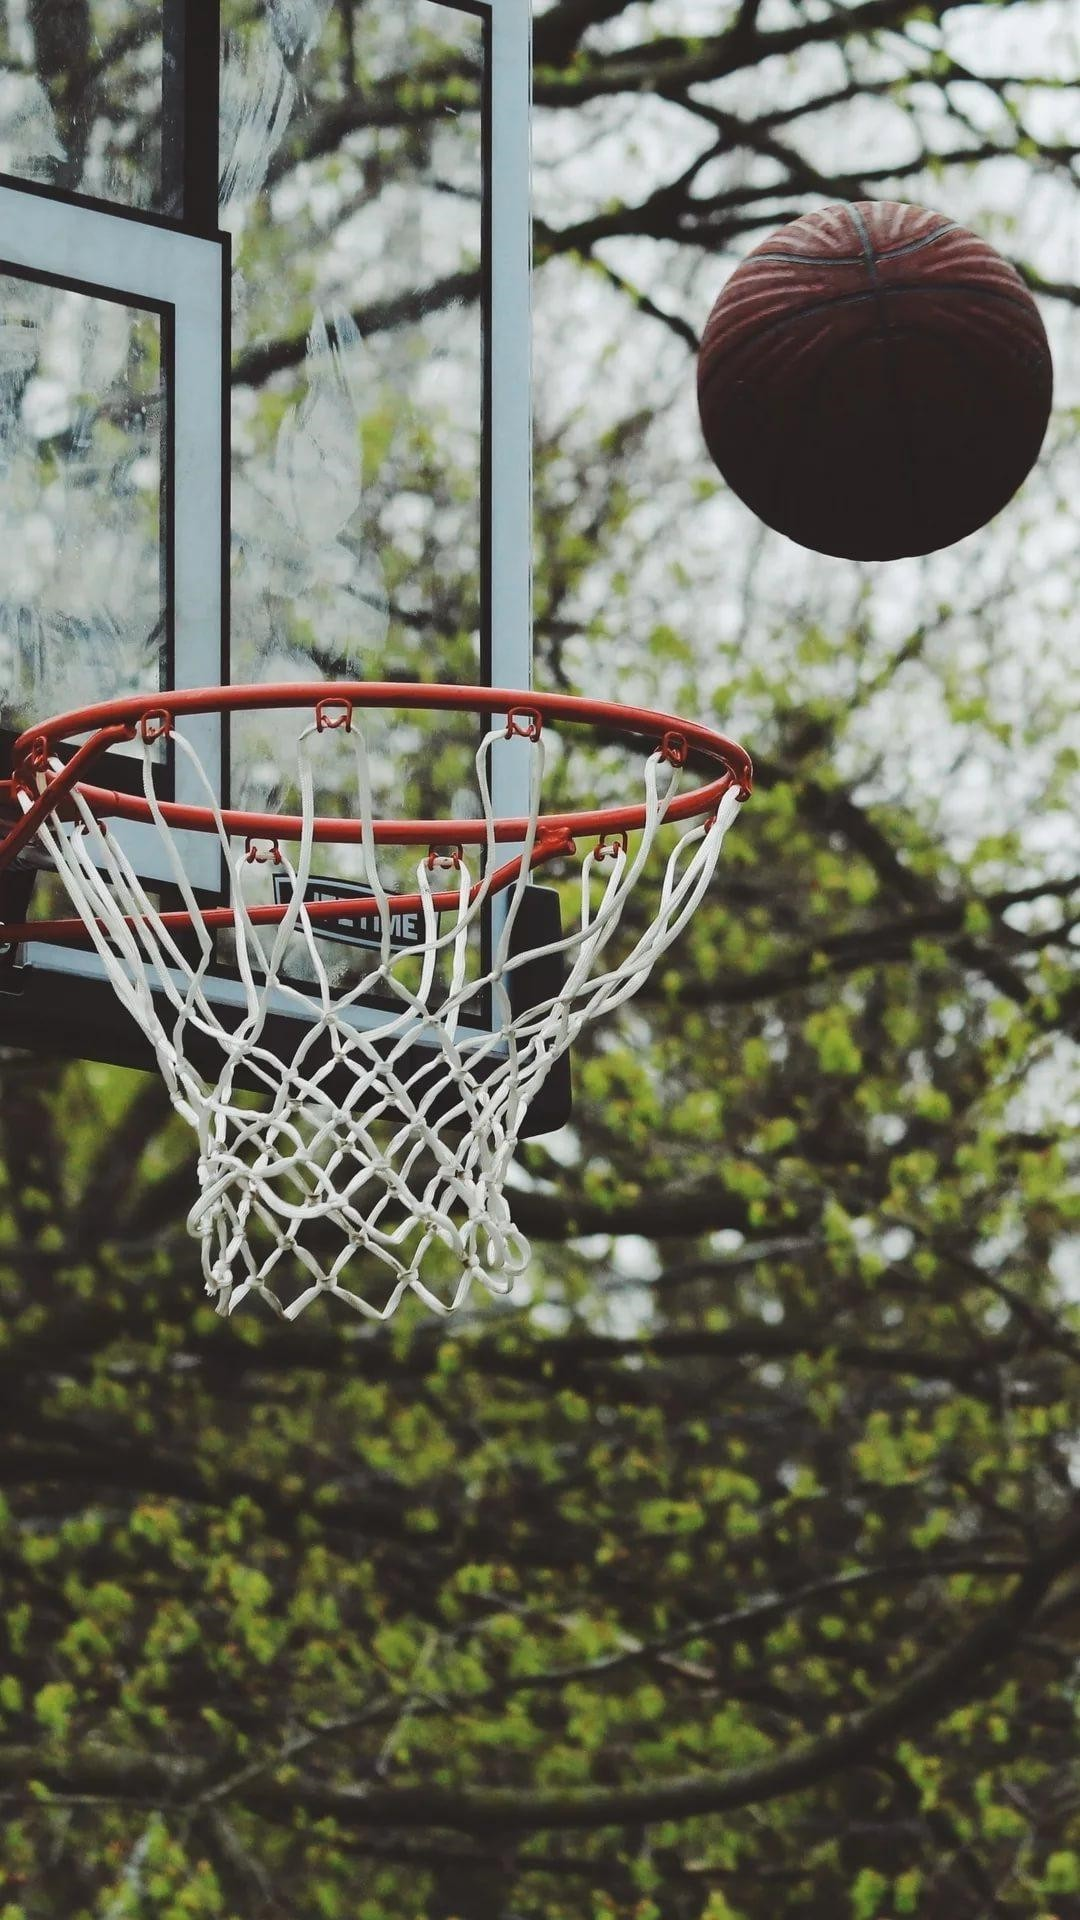 Basketball wallpaper for android